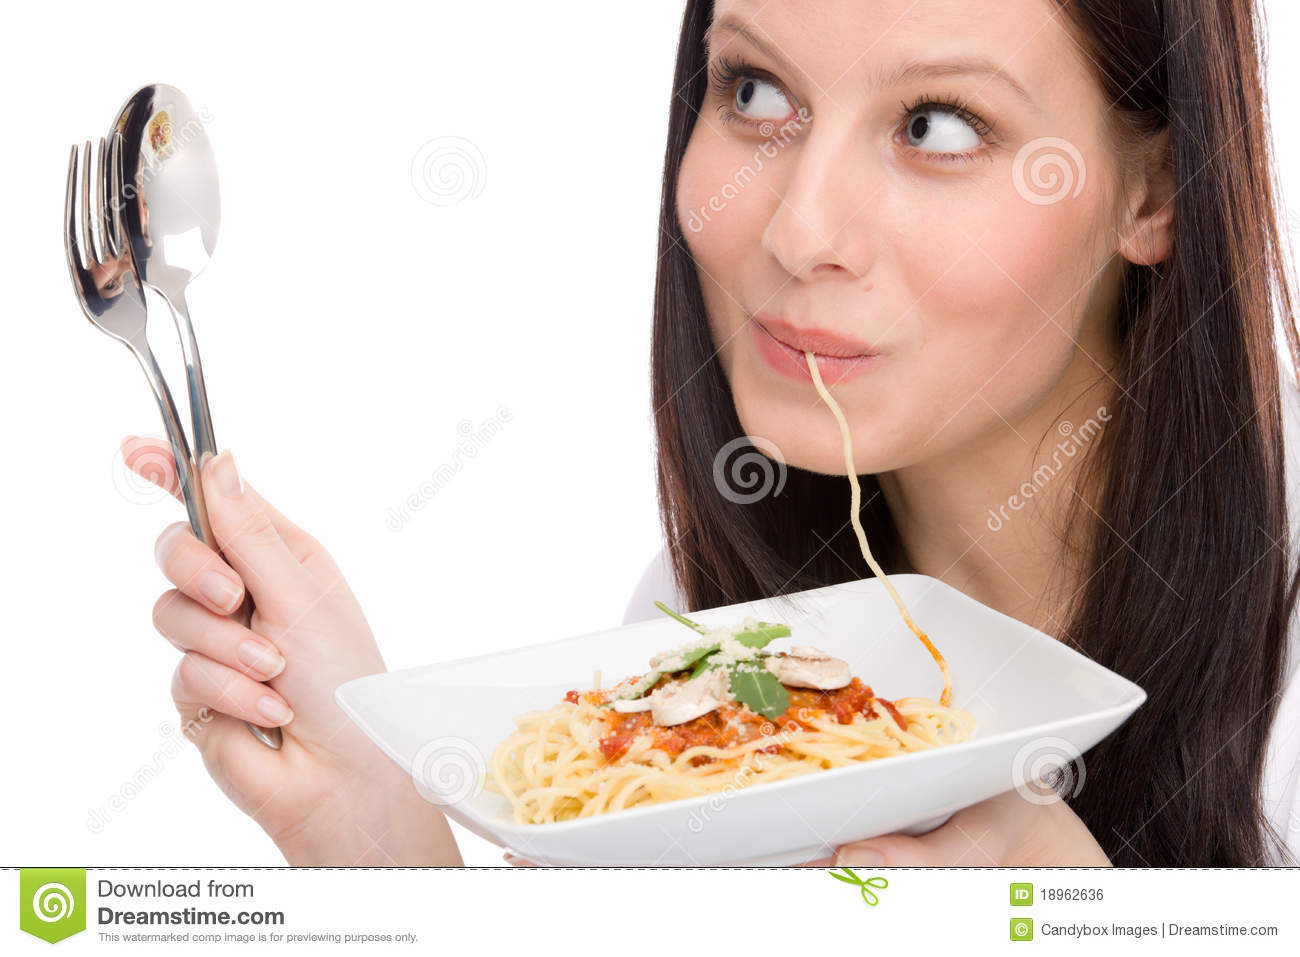 how to eat spaghetti properly